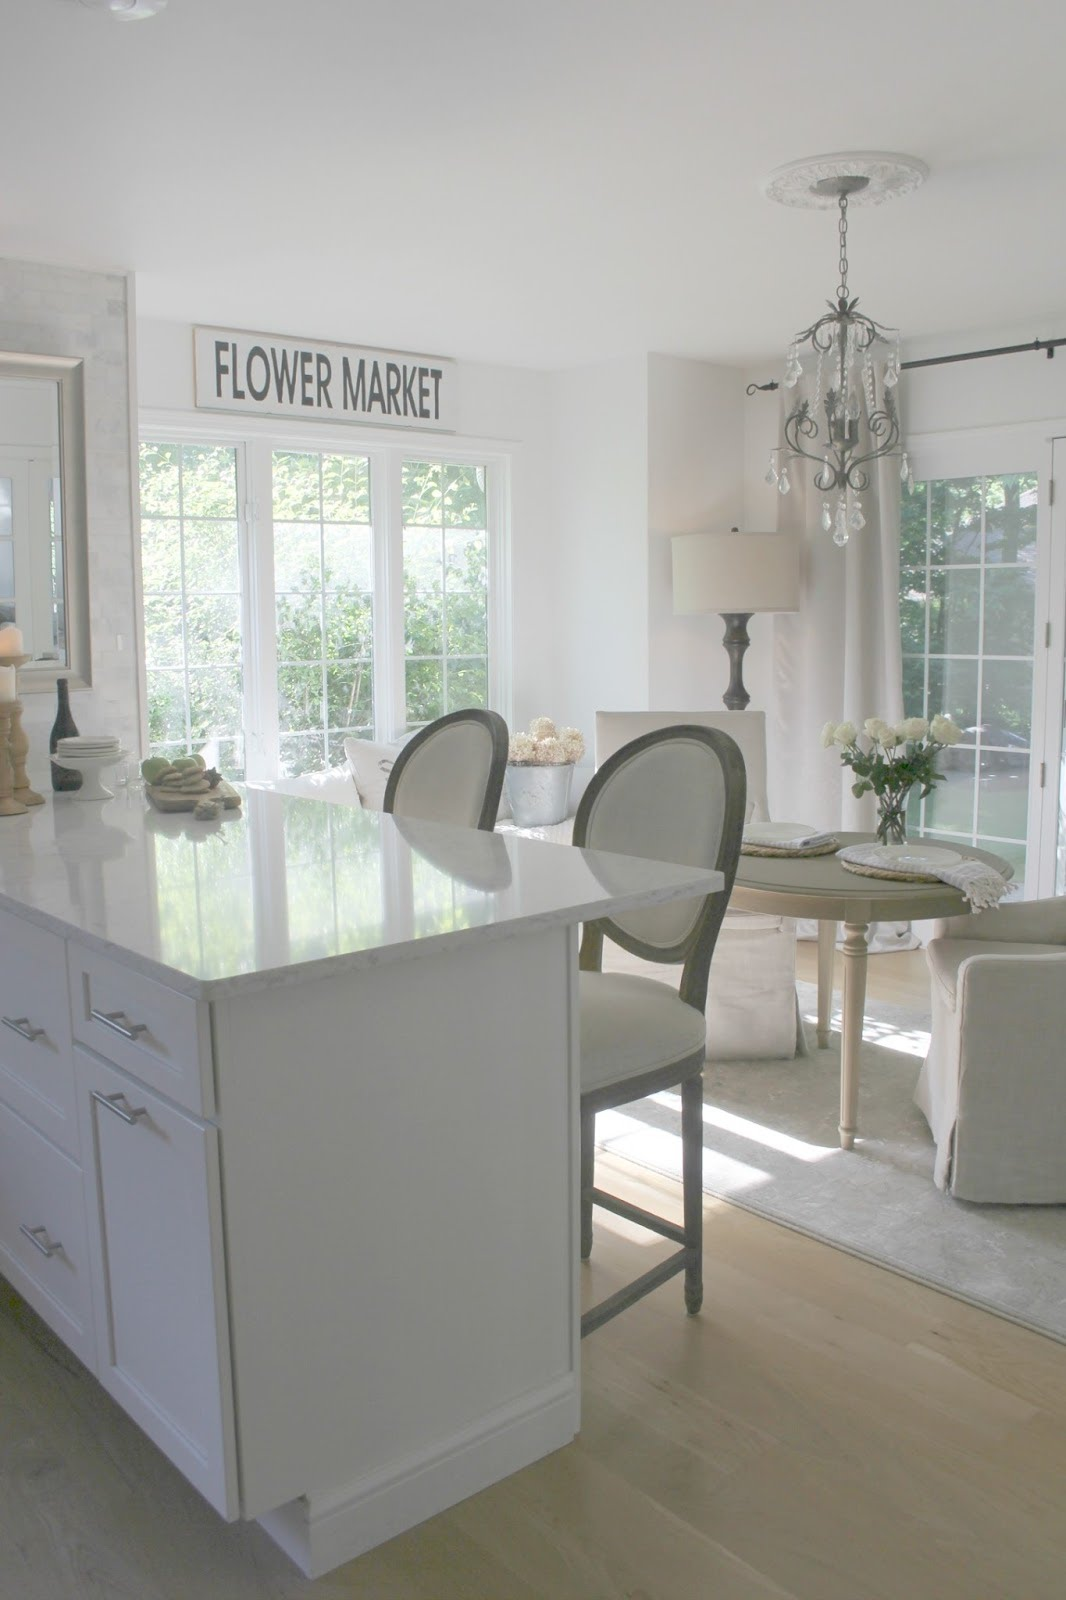 My serene whit ekitchen with modern farmhouse, classic, and French country style. Vintage Flower Market sign from Urban Farmgirl. Viatera quartz (Minuet) countertops and Louis linen upholstered bar stools. Round breakfast table and two linen slipcovered arm chairs. Come feast on photos of beautiful interiors to inspire As Well As Classic Interior Design Inspiration.